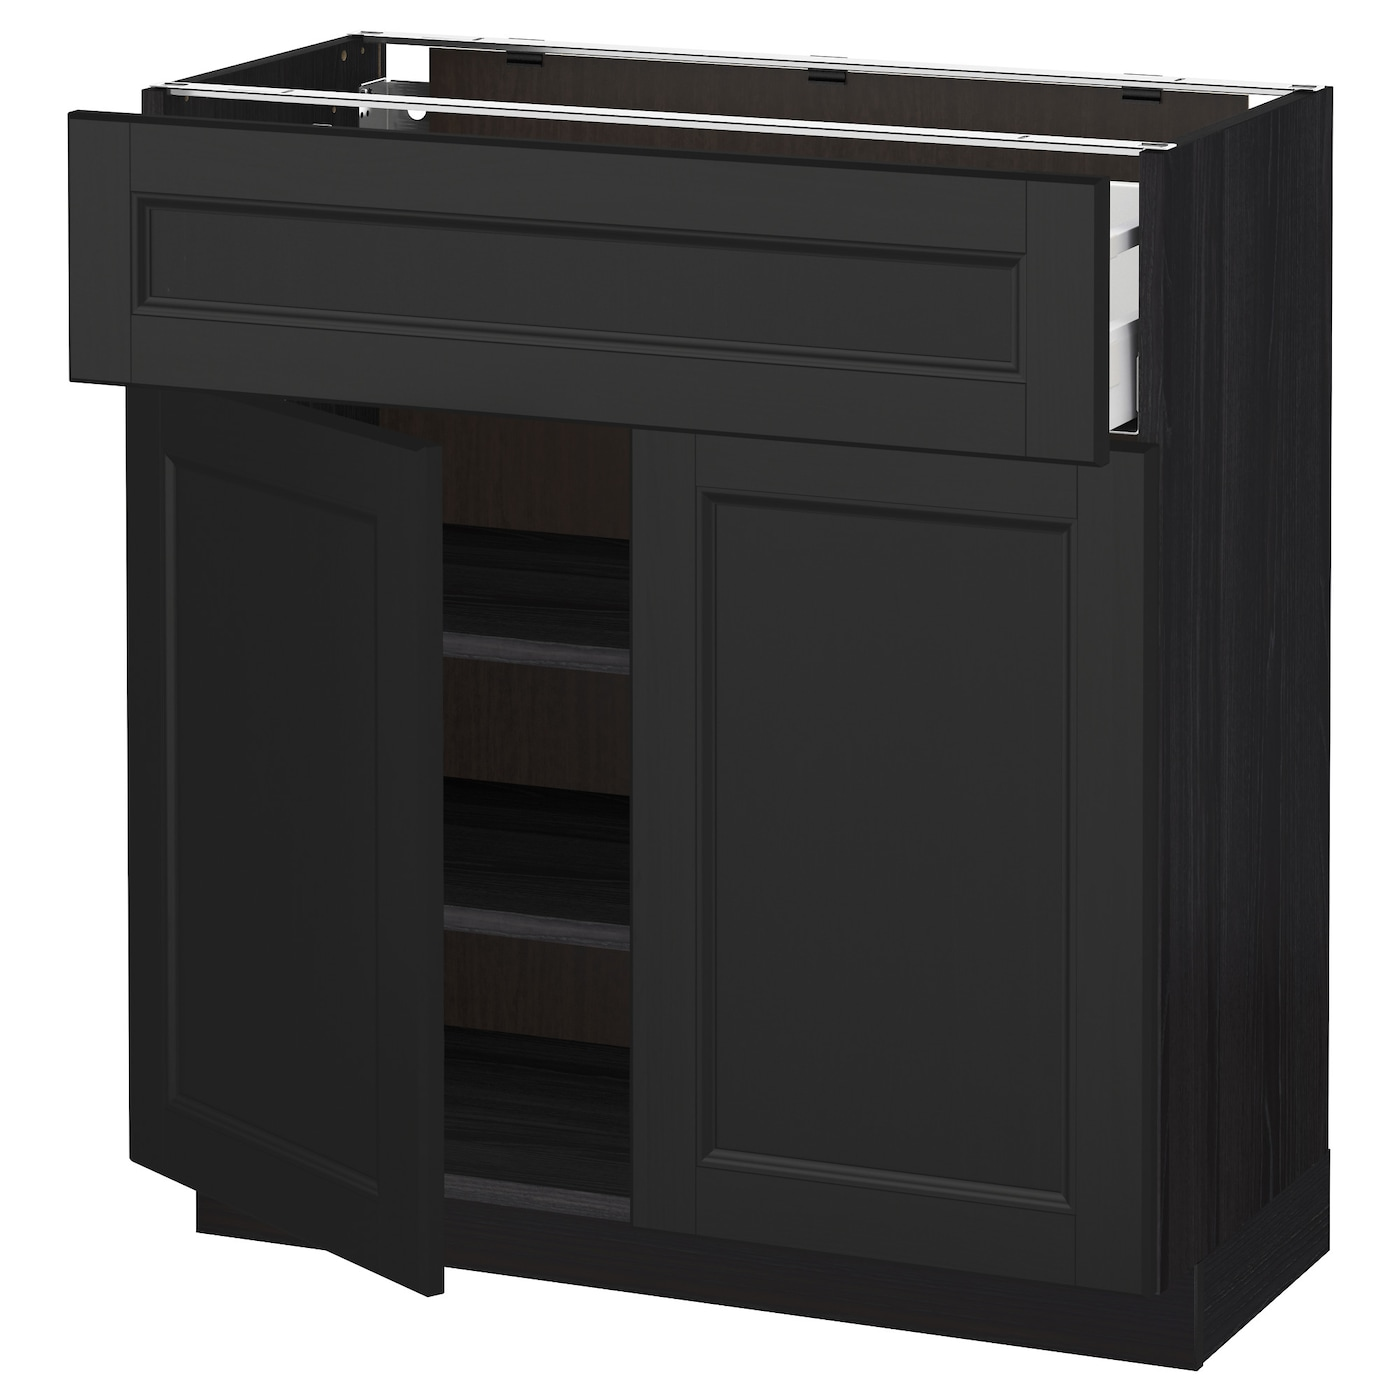 black kitchen base cabinets metod maximera base cabinet with drawer 2 doors black 12375